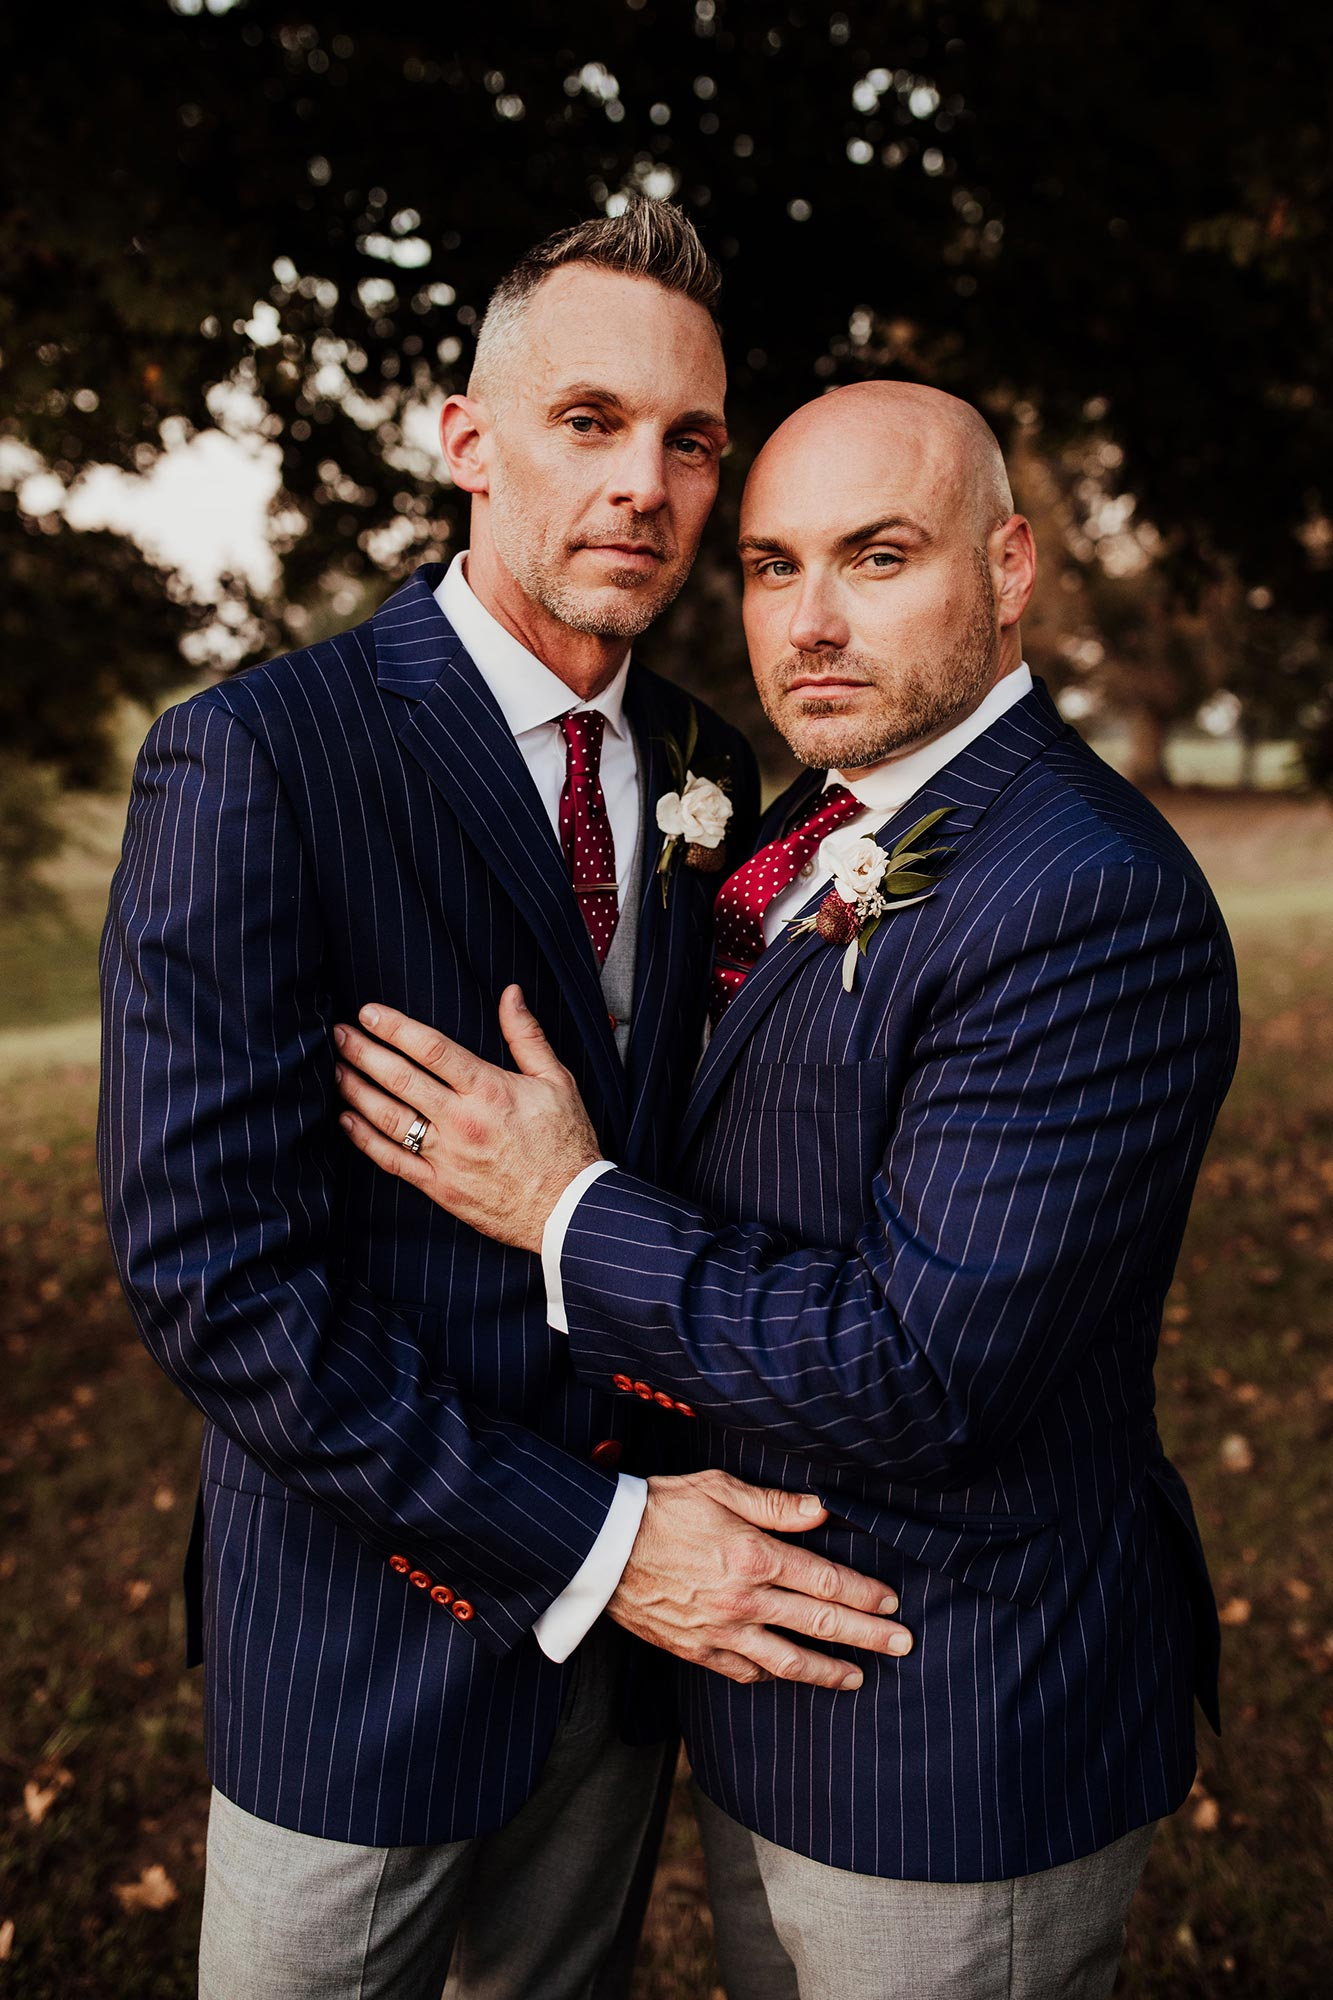 LGBTQ Louisville Kentucky Wedding at Hermitage Farm Crystal Ludwick Photo serious portrait